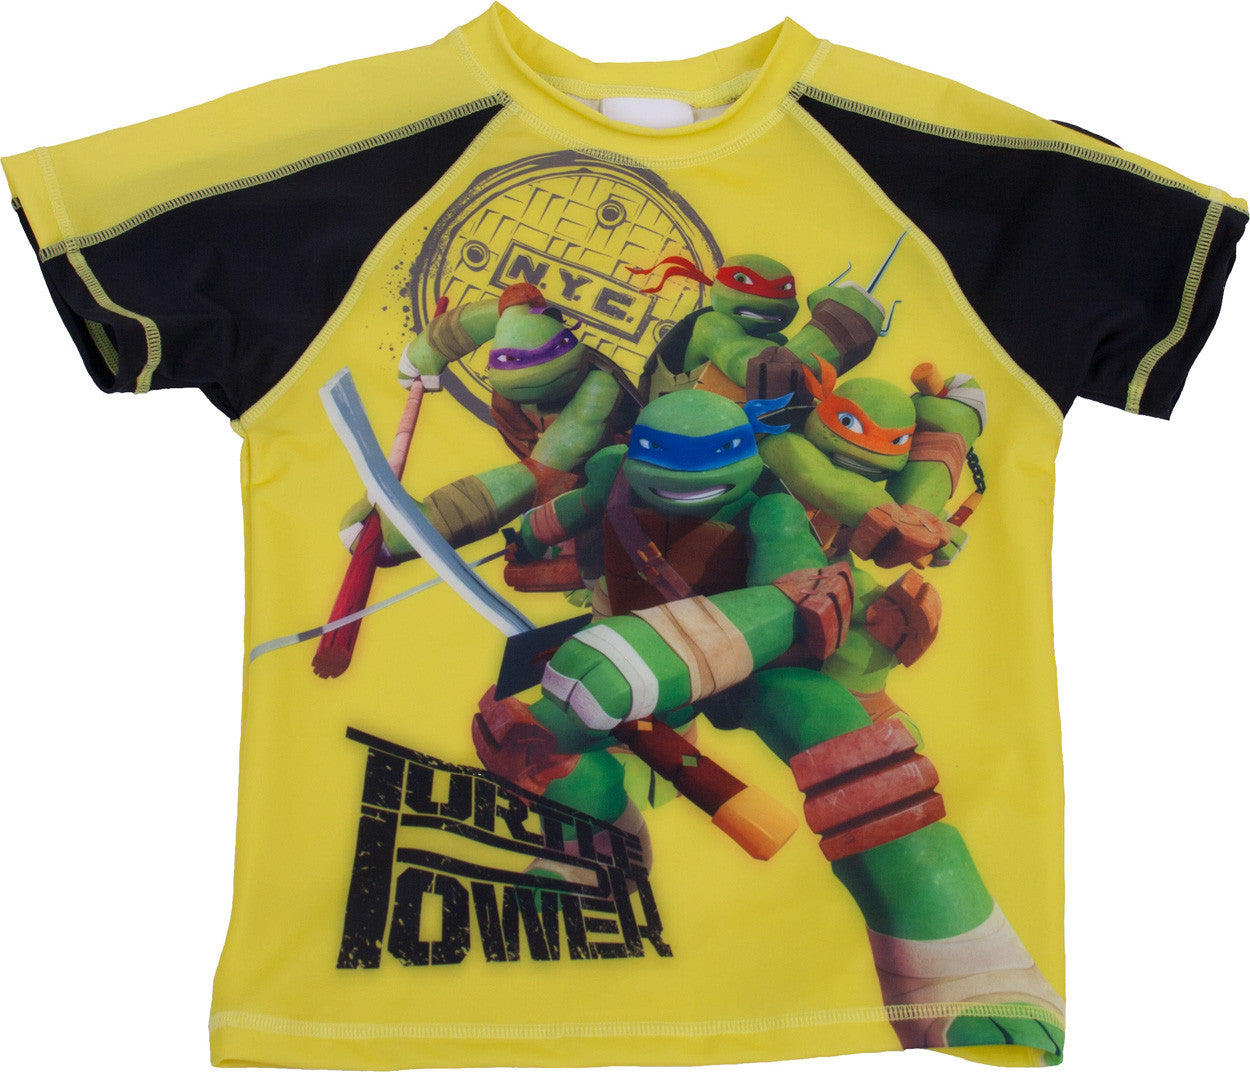 Teenage Mutant Ninja Turtles Turtle Power Rash Guard